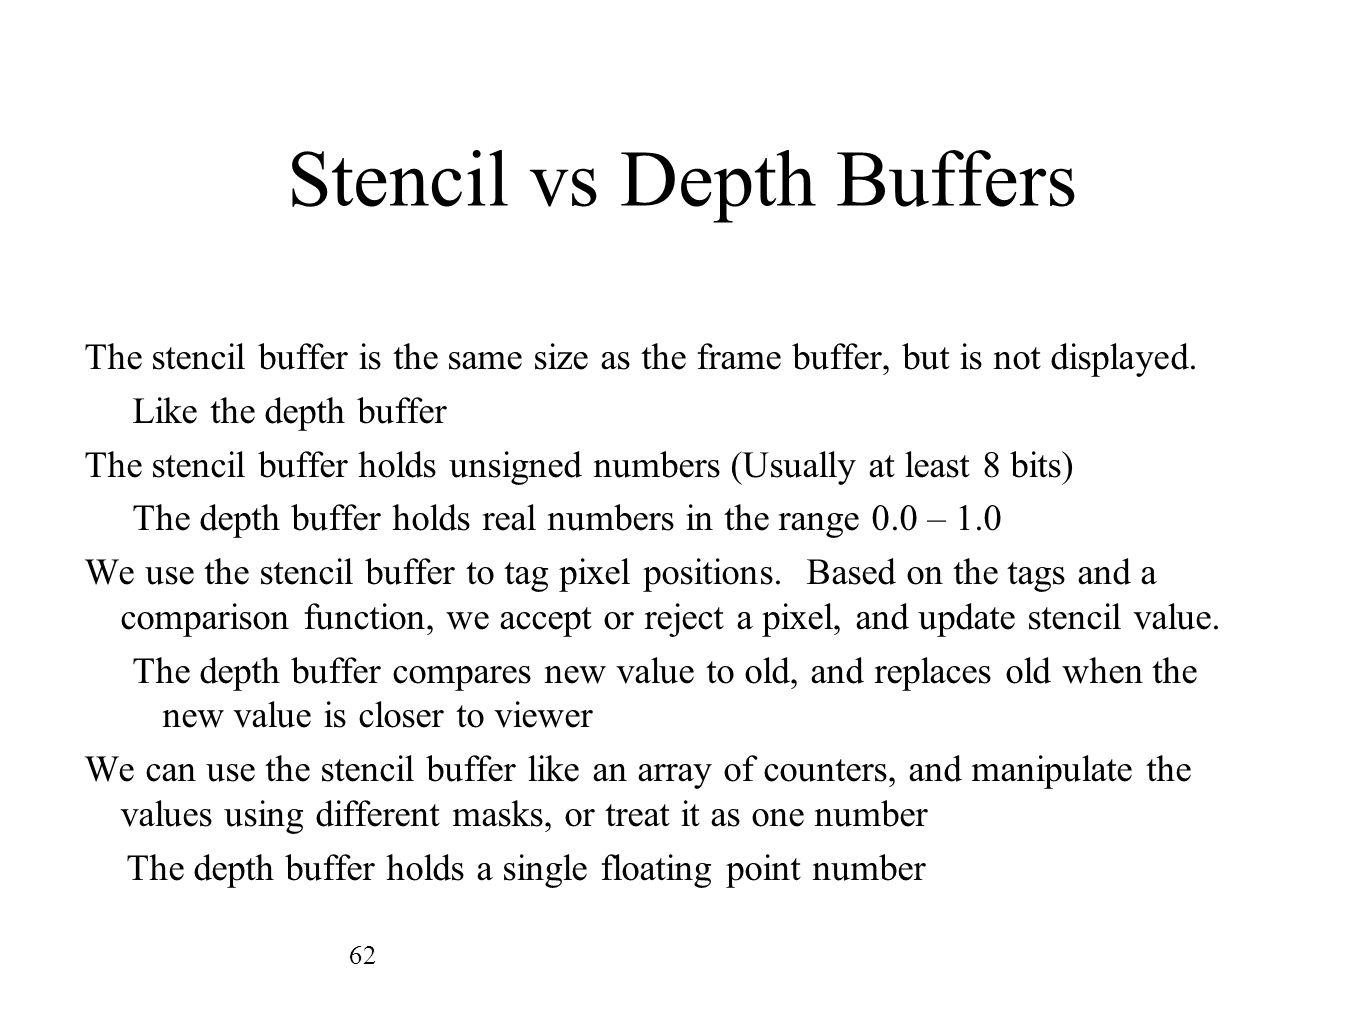 Stencil vs Depth Buffers